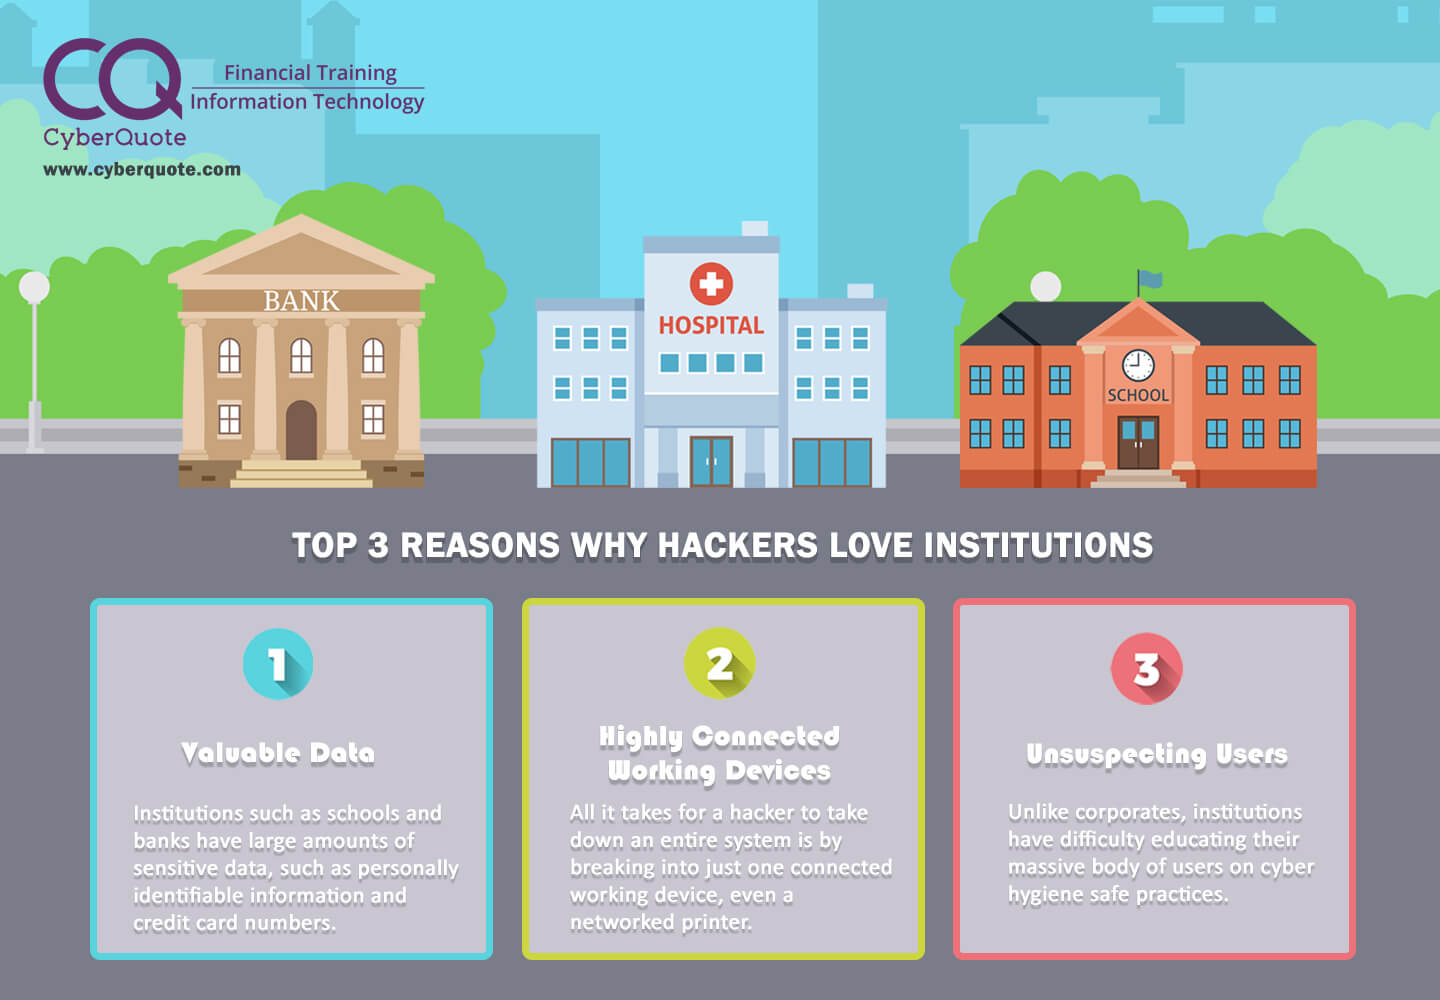 Top 3 Reasons Why Hackers Love Institutions